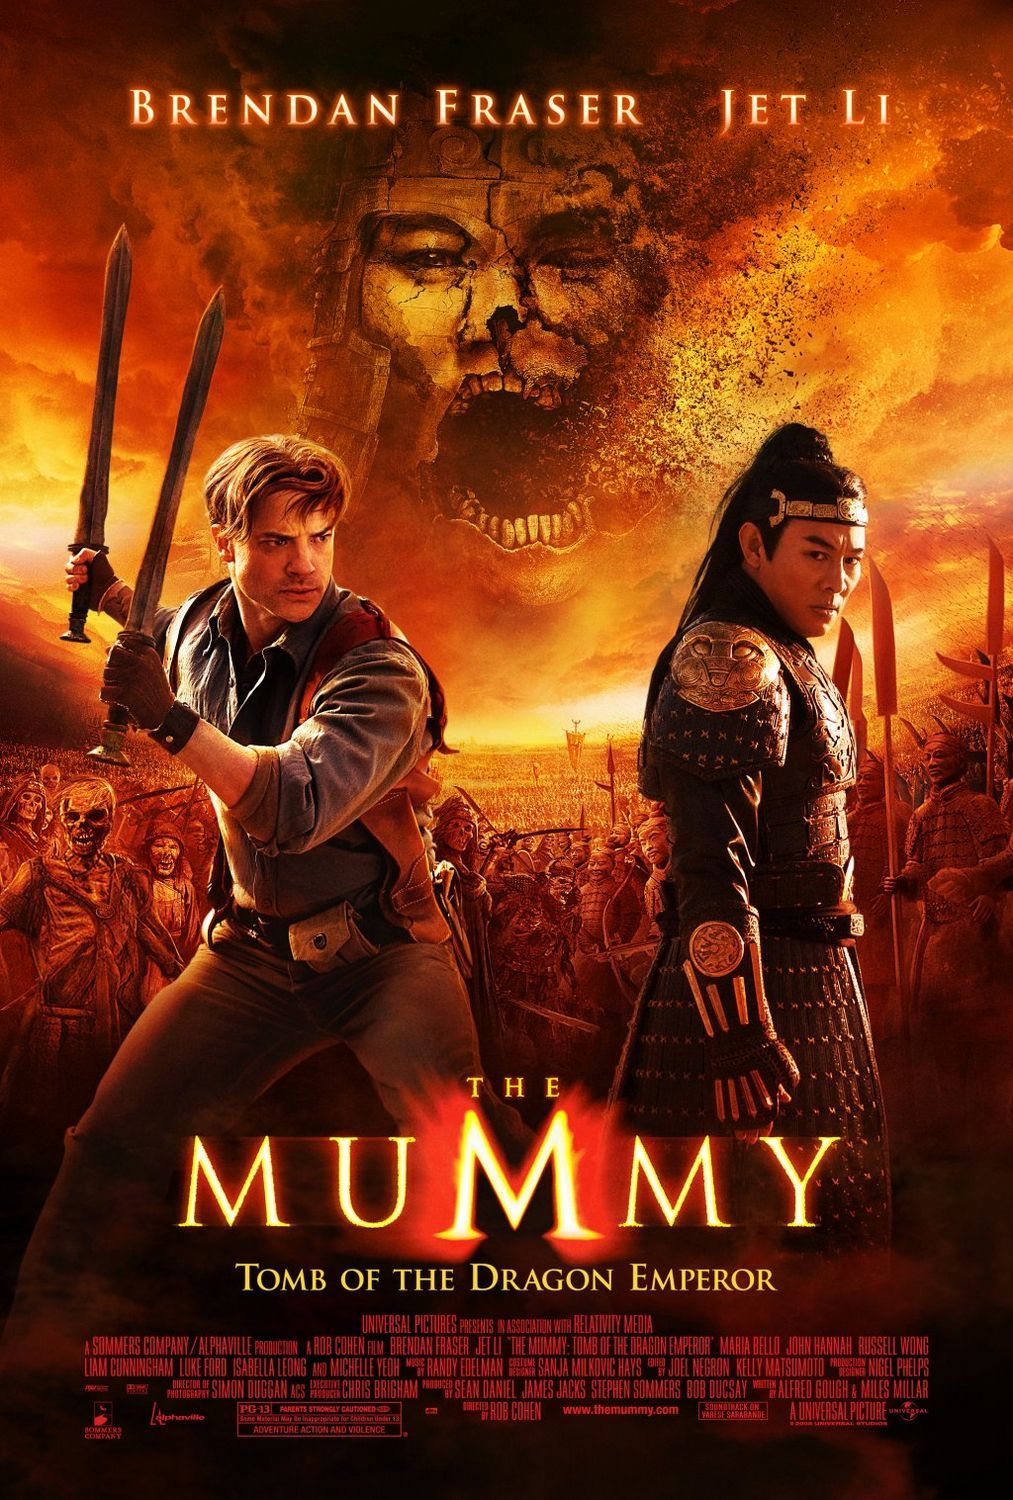 The Mummy The Tomb Of The Dragon Emperor Mummy Movie